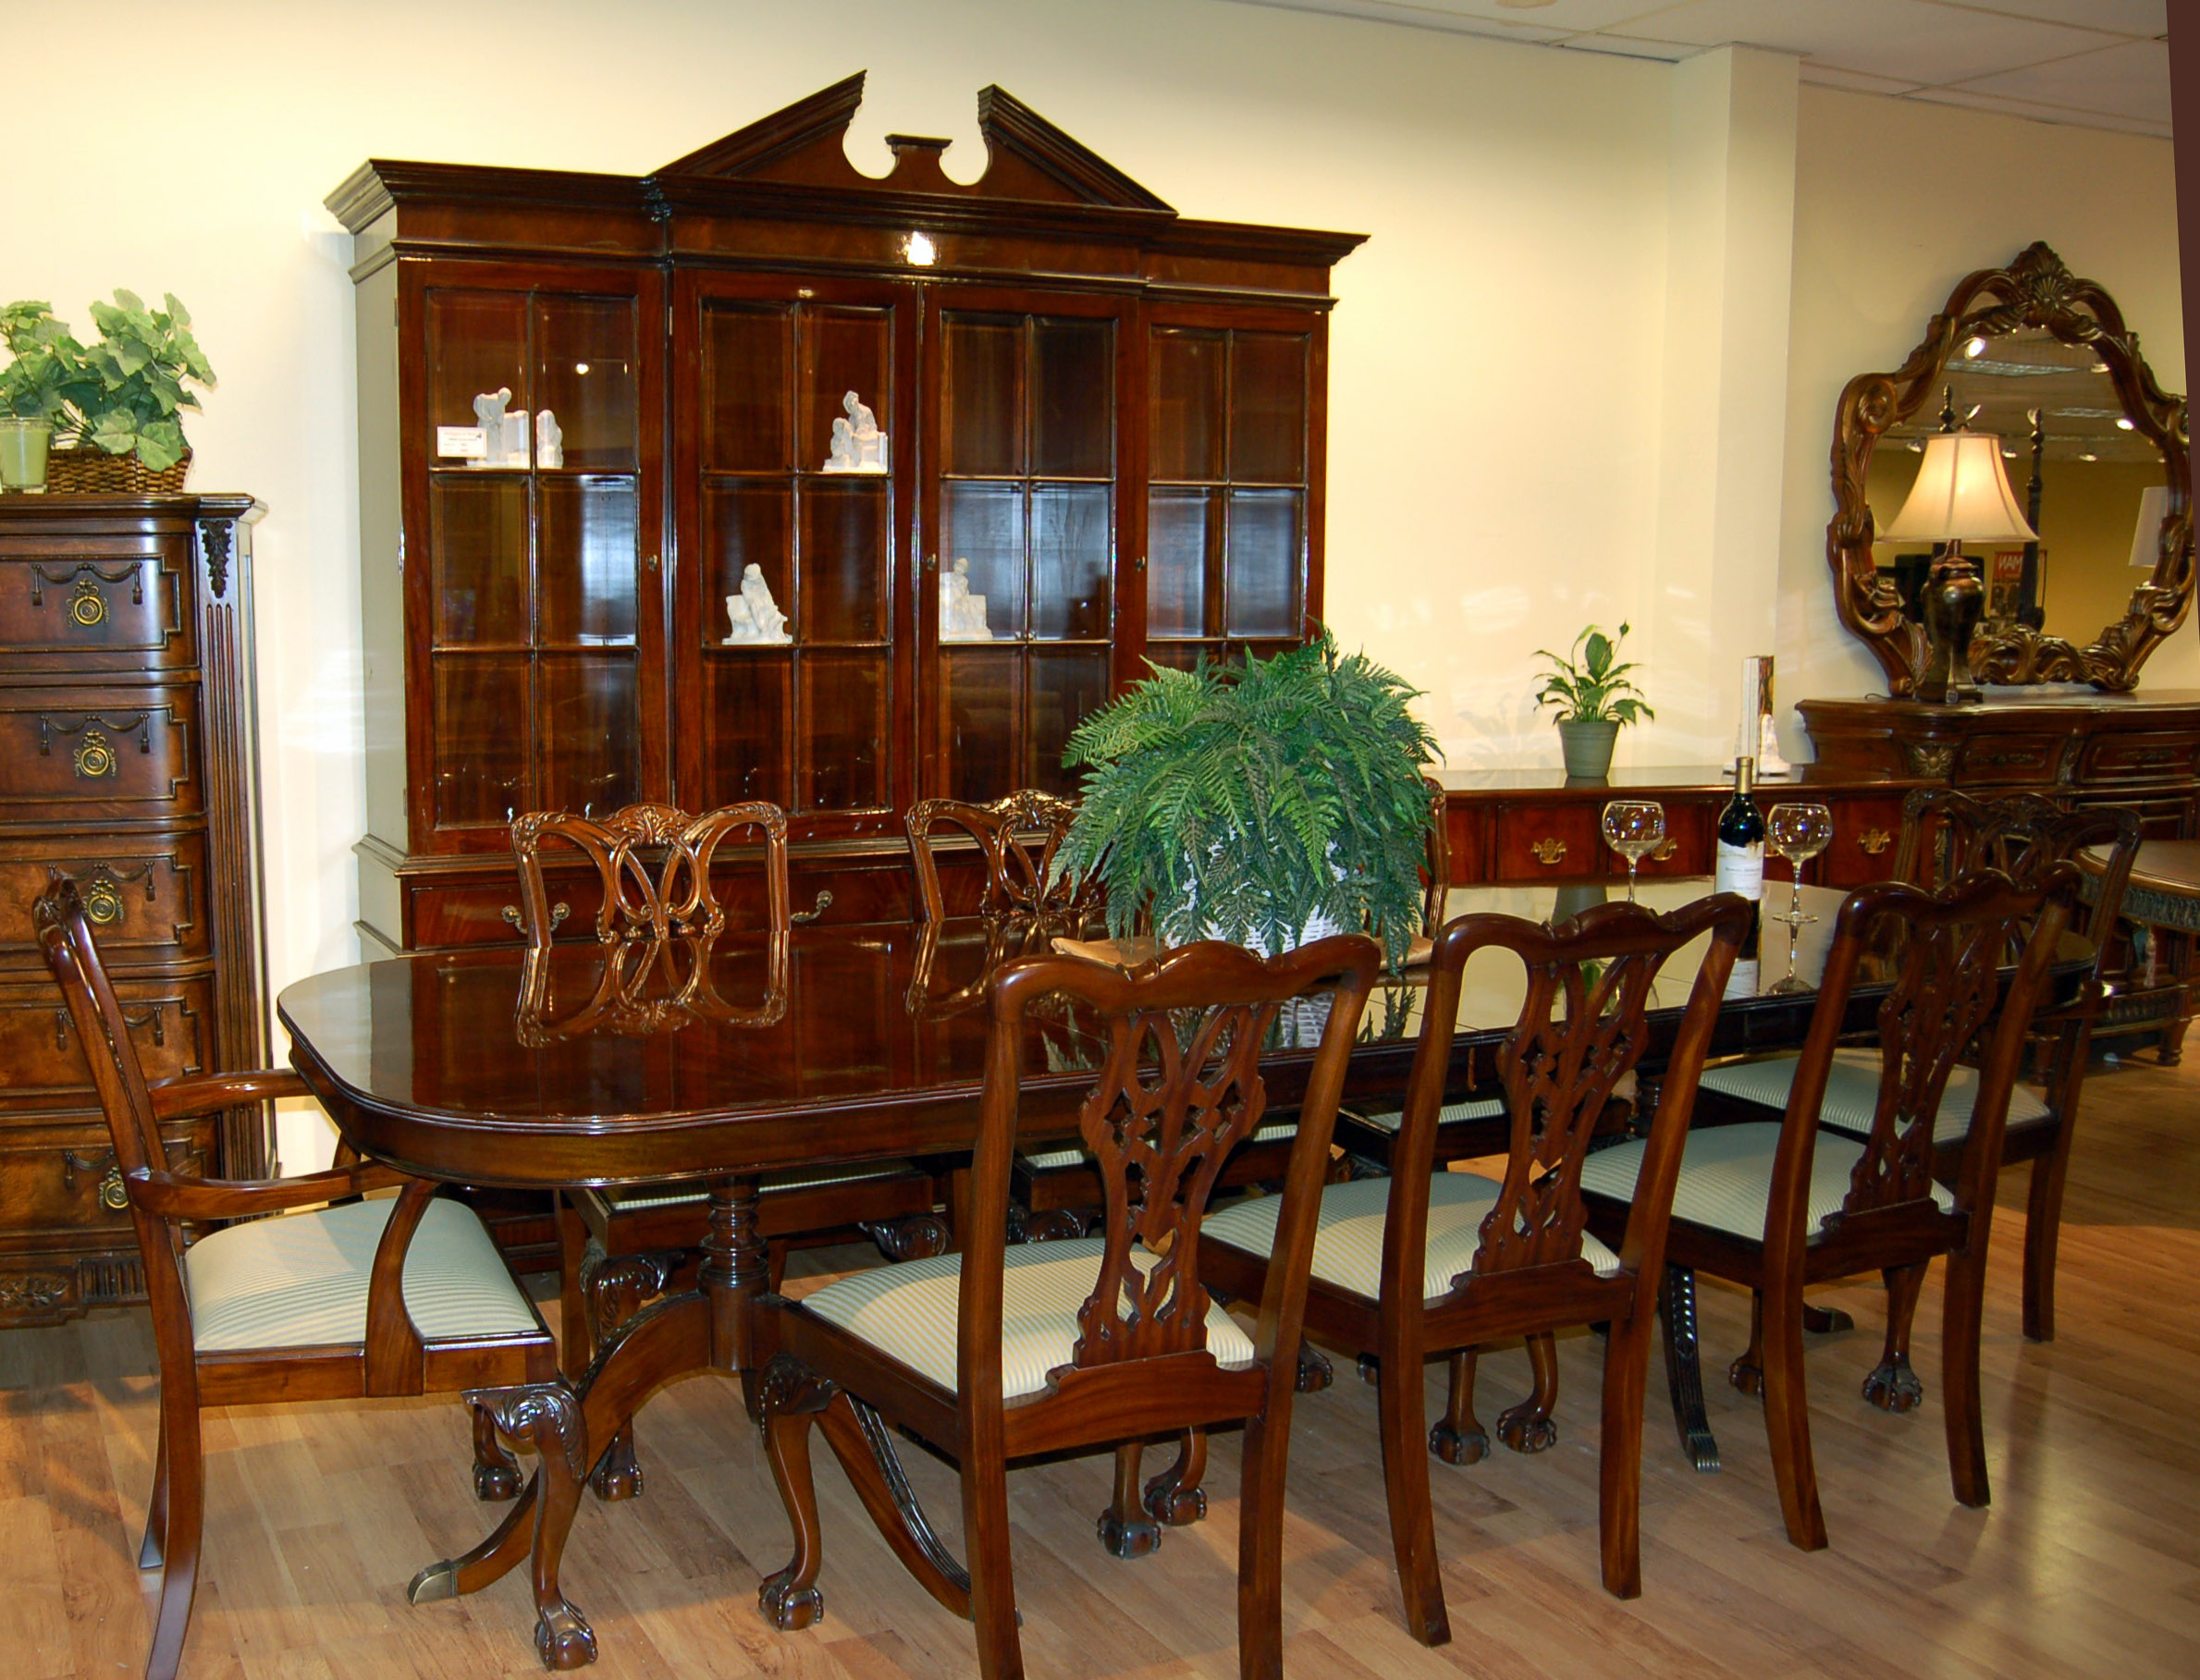 mahogany dining room set image image tahoe rustic style mahogany finish dining room set